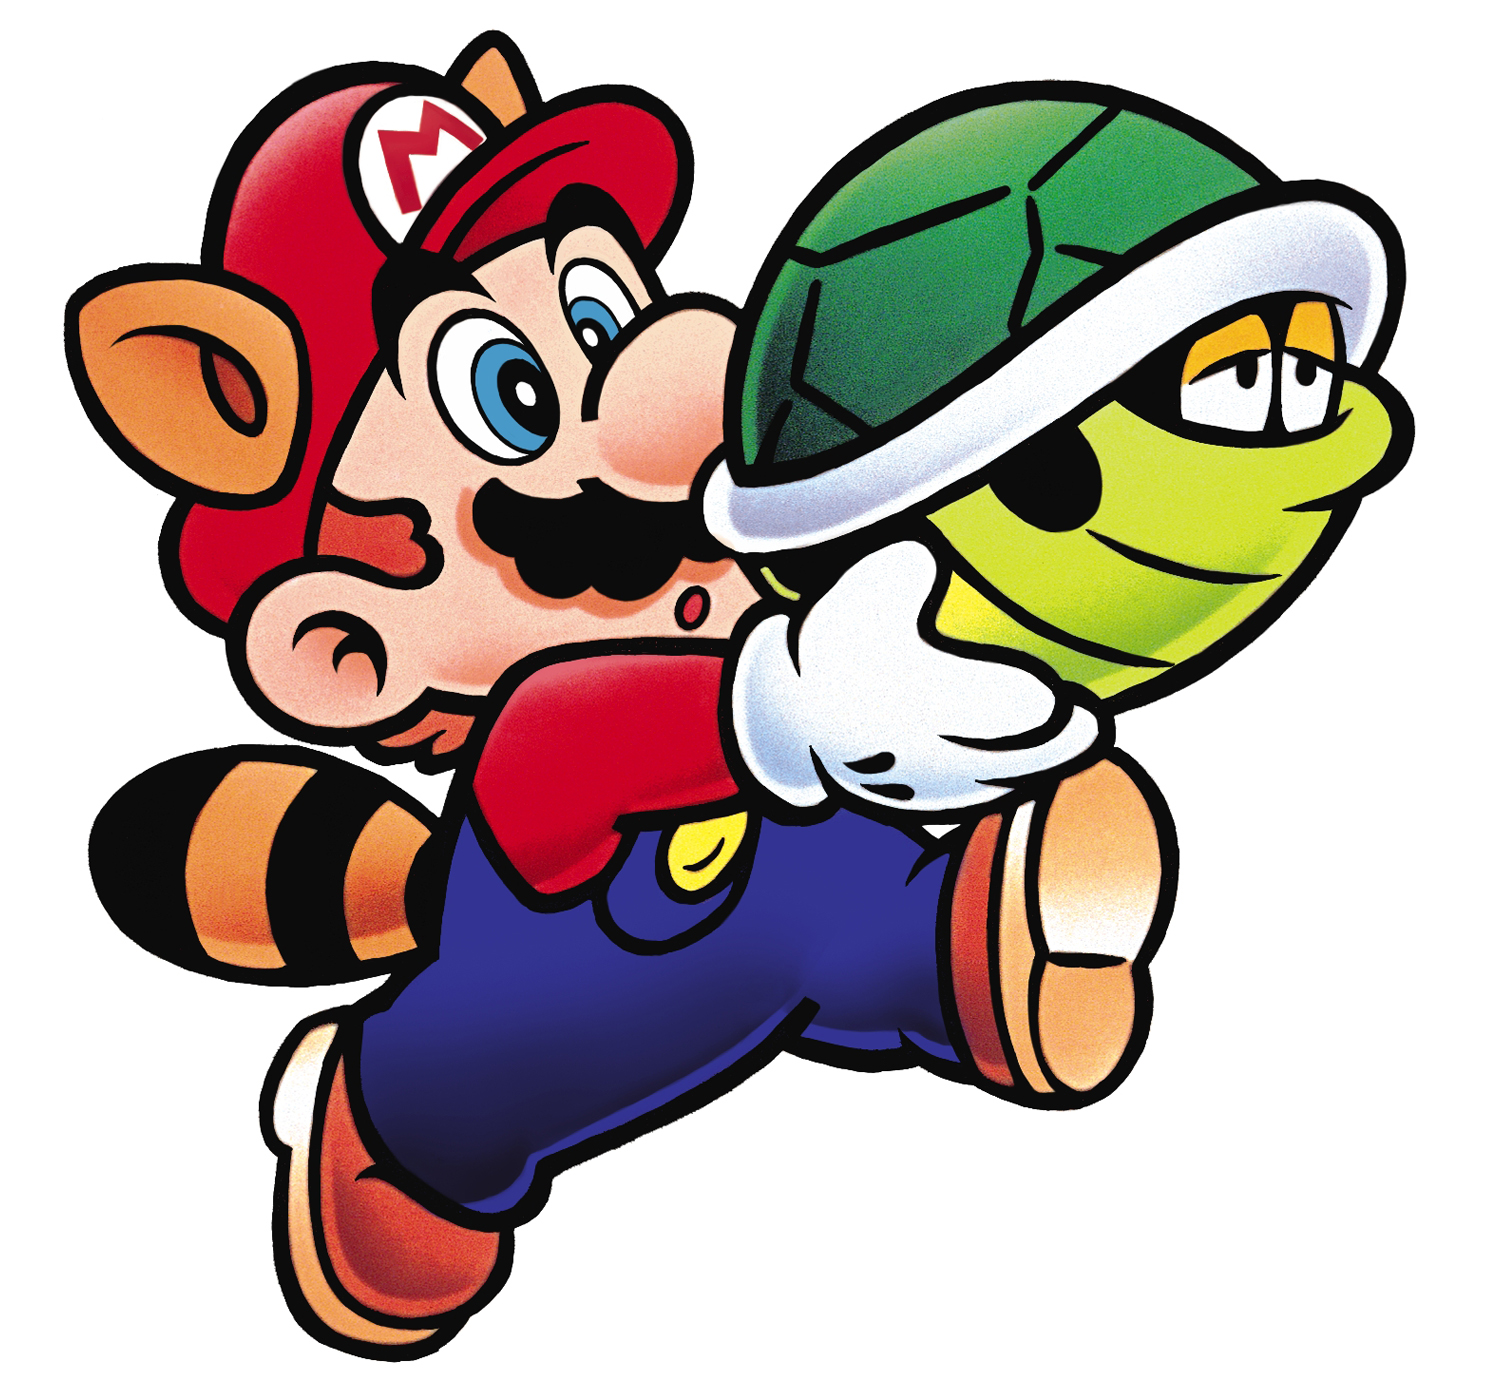 http://www.mariowiki.com/images/4/49/Mariohatted.jpg